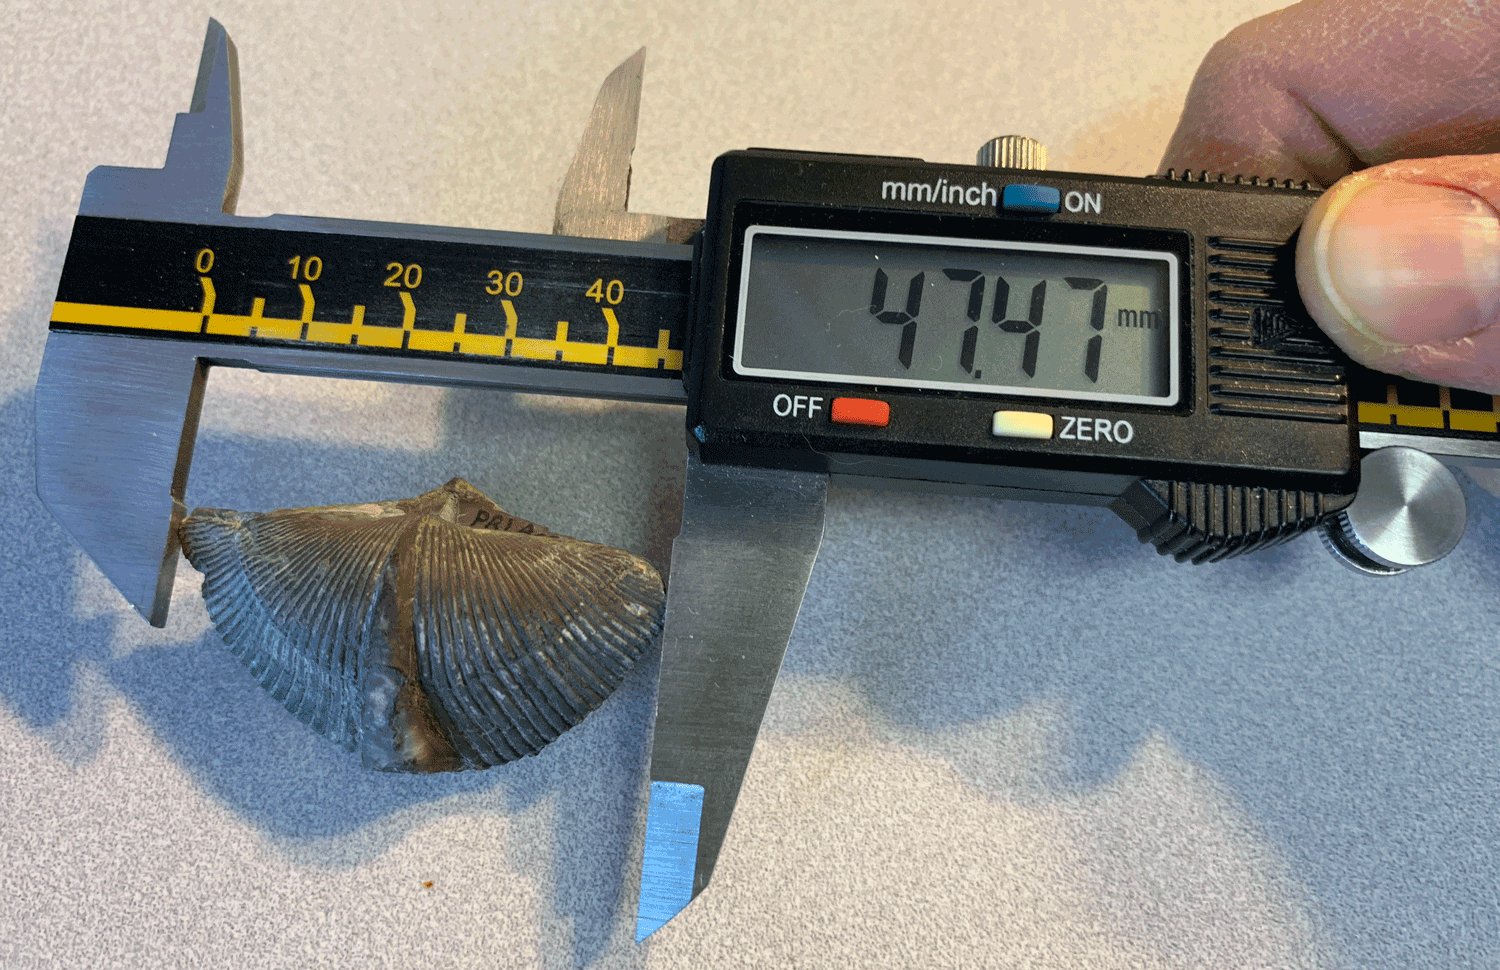 Example of a measurement being collected from a specimen of the brachiopod Mediospirifer audaculus using a digital calipers. Specimen is from the Middle Devonian Moscow Formation of Livingston County, New York (PRI 76830).